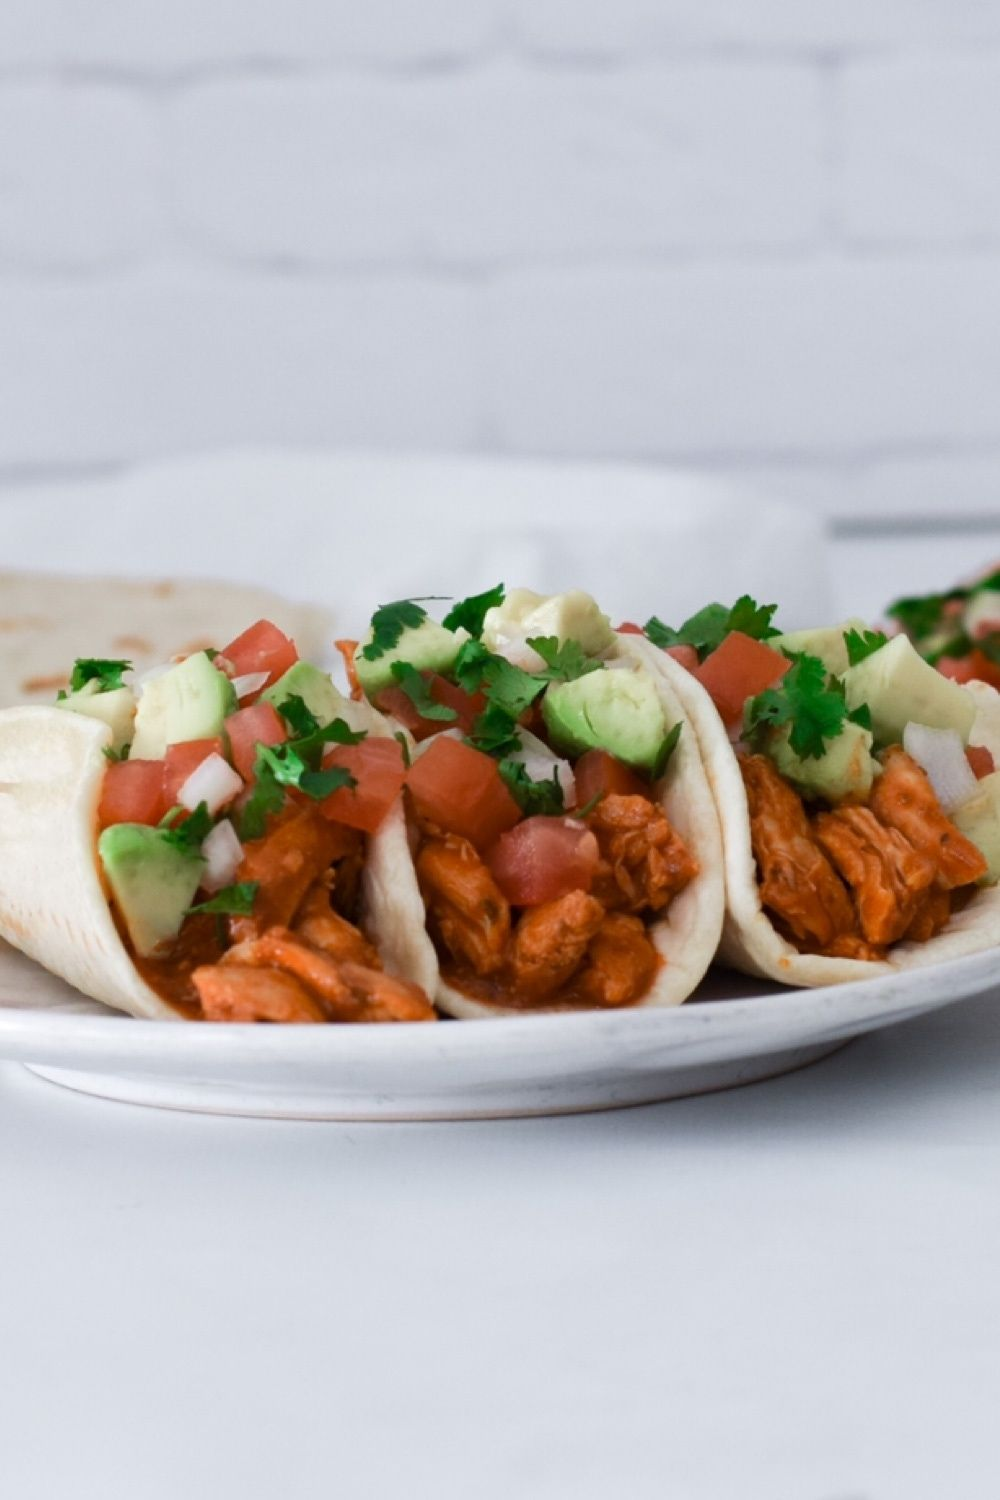 saucy chicken tacos in a white plate